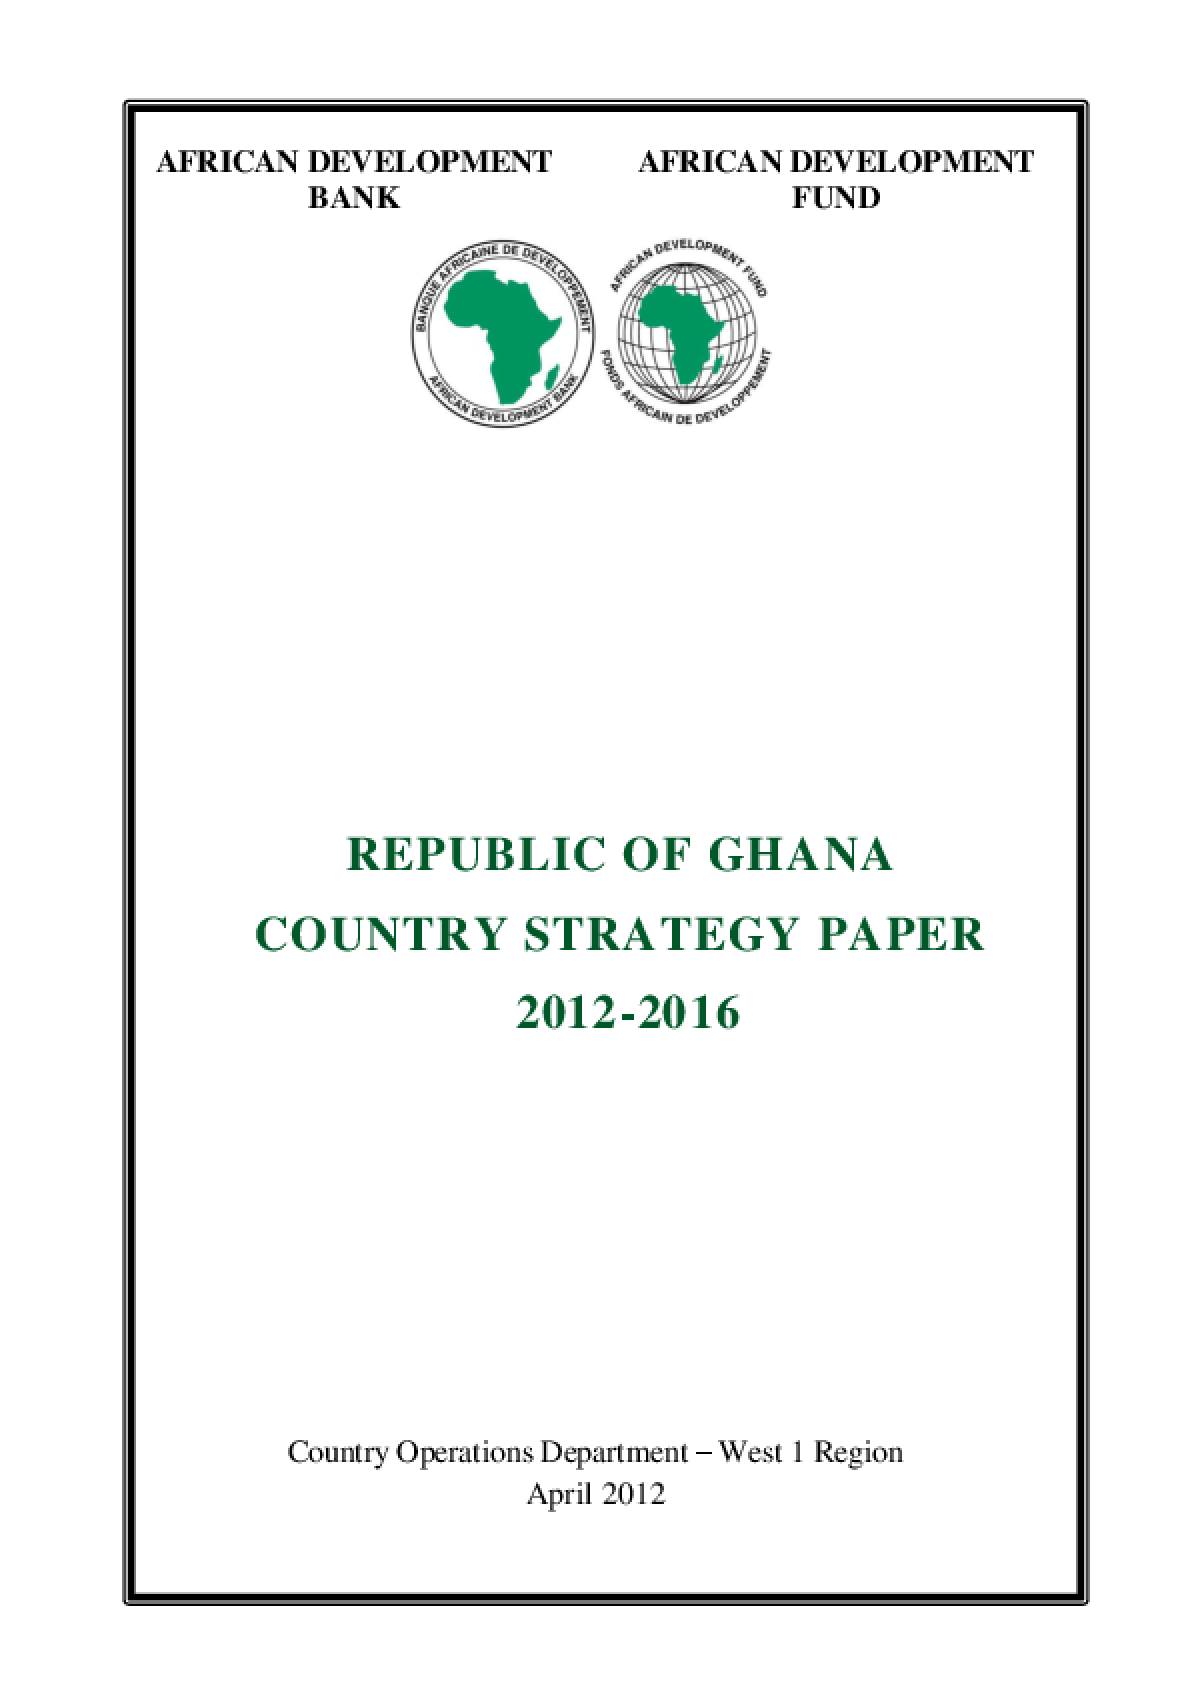 Republic of Ghana Country Strategy Paper 2012-2016